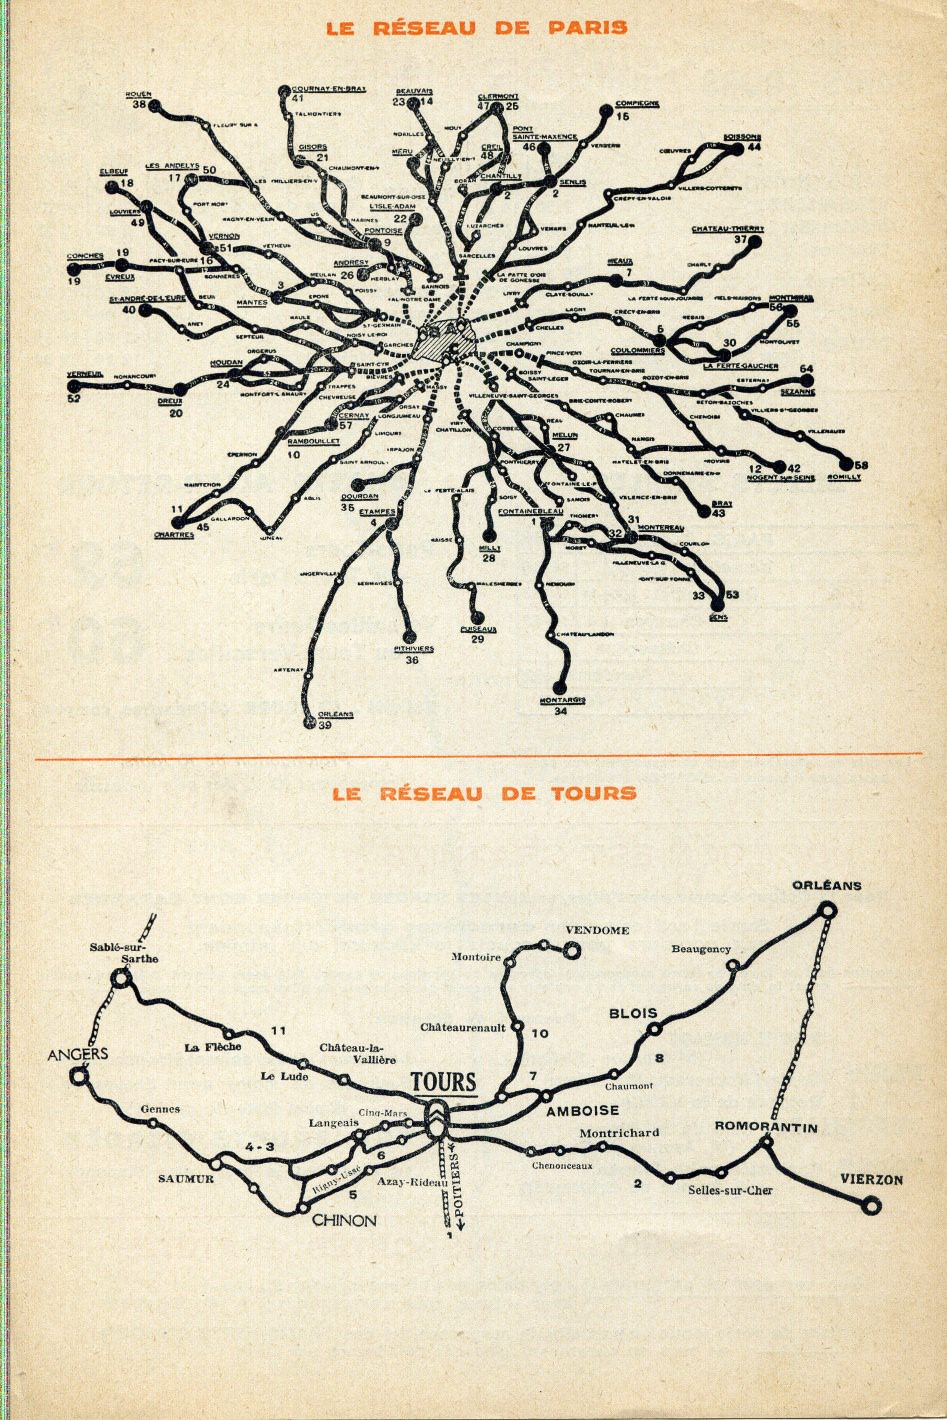 1933 Transports Citroen maps Tours and Paris